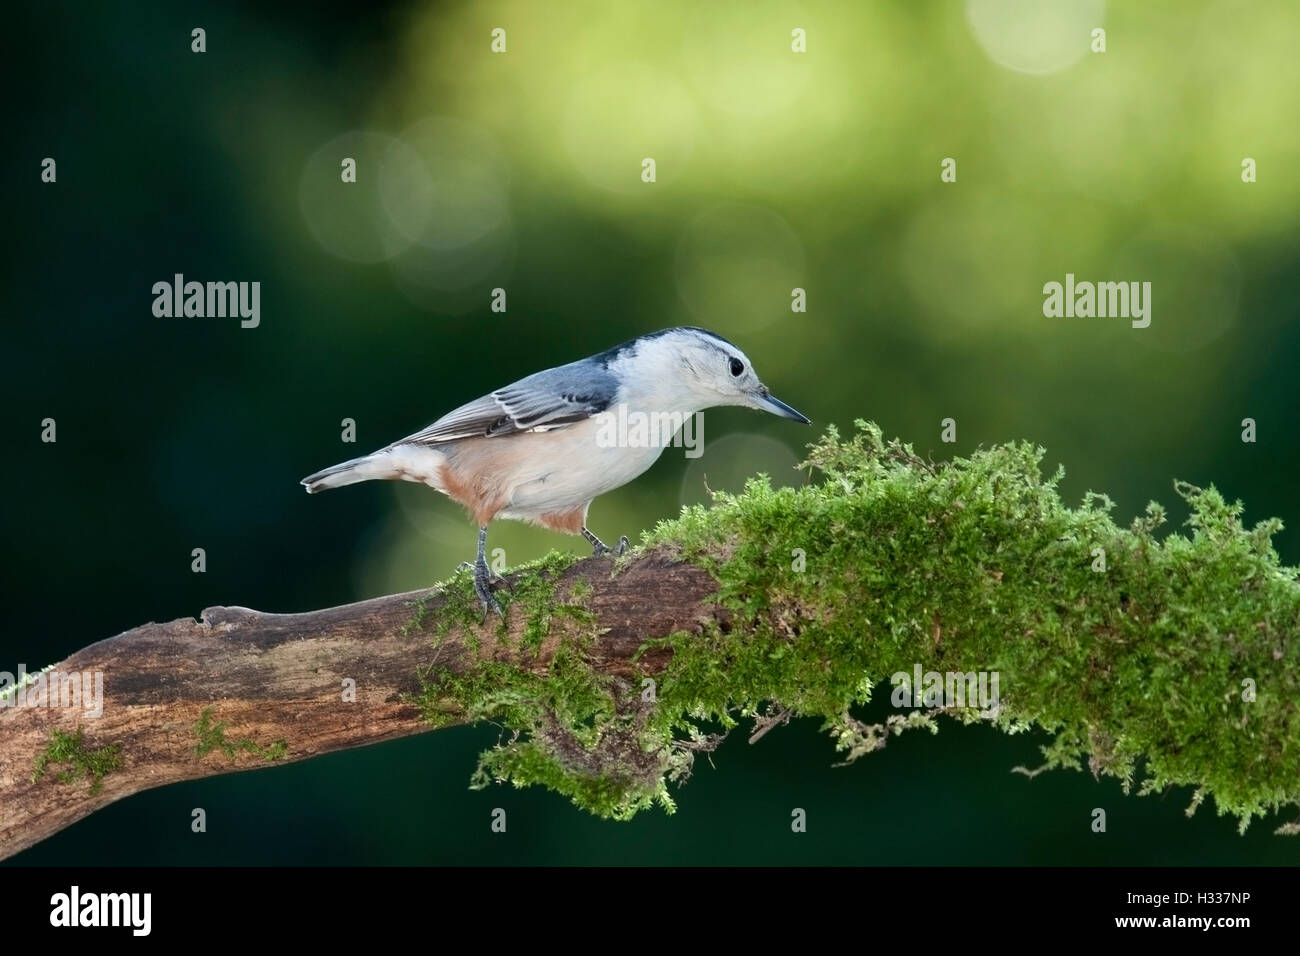 White breasted nuthatch searches for food on moss covered branch - Stock Image